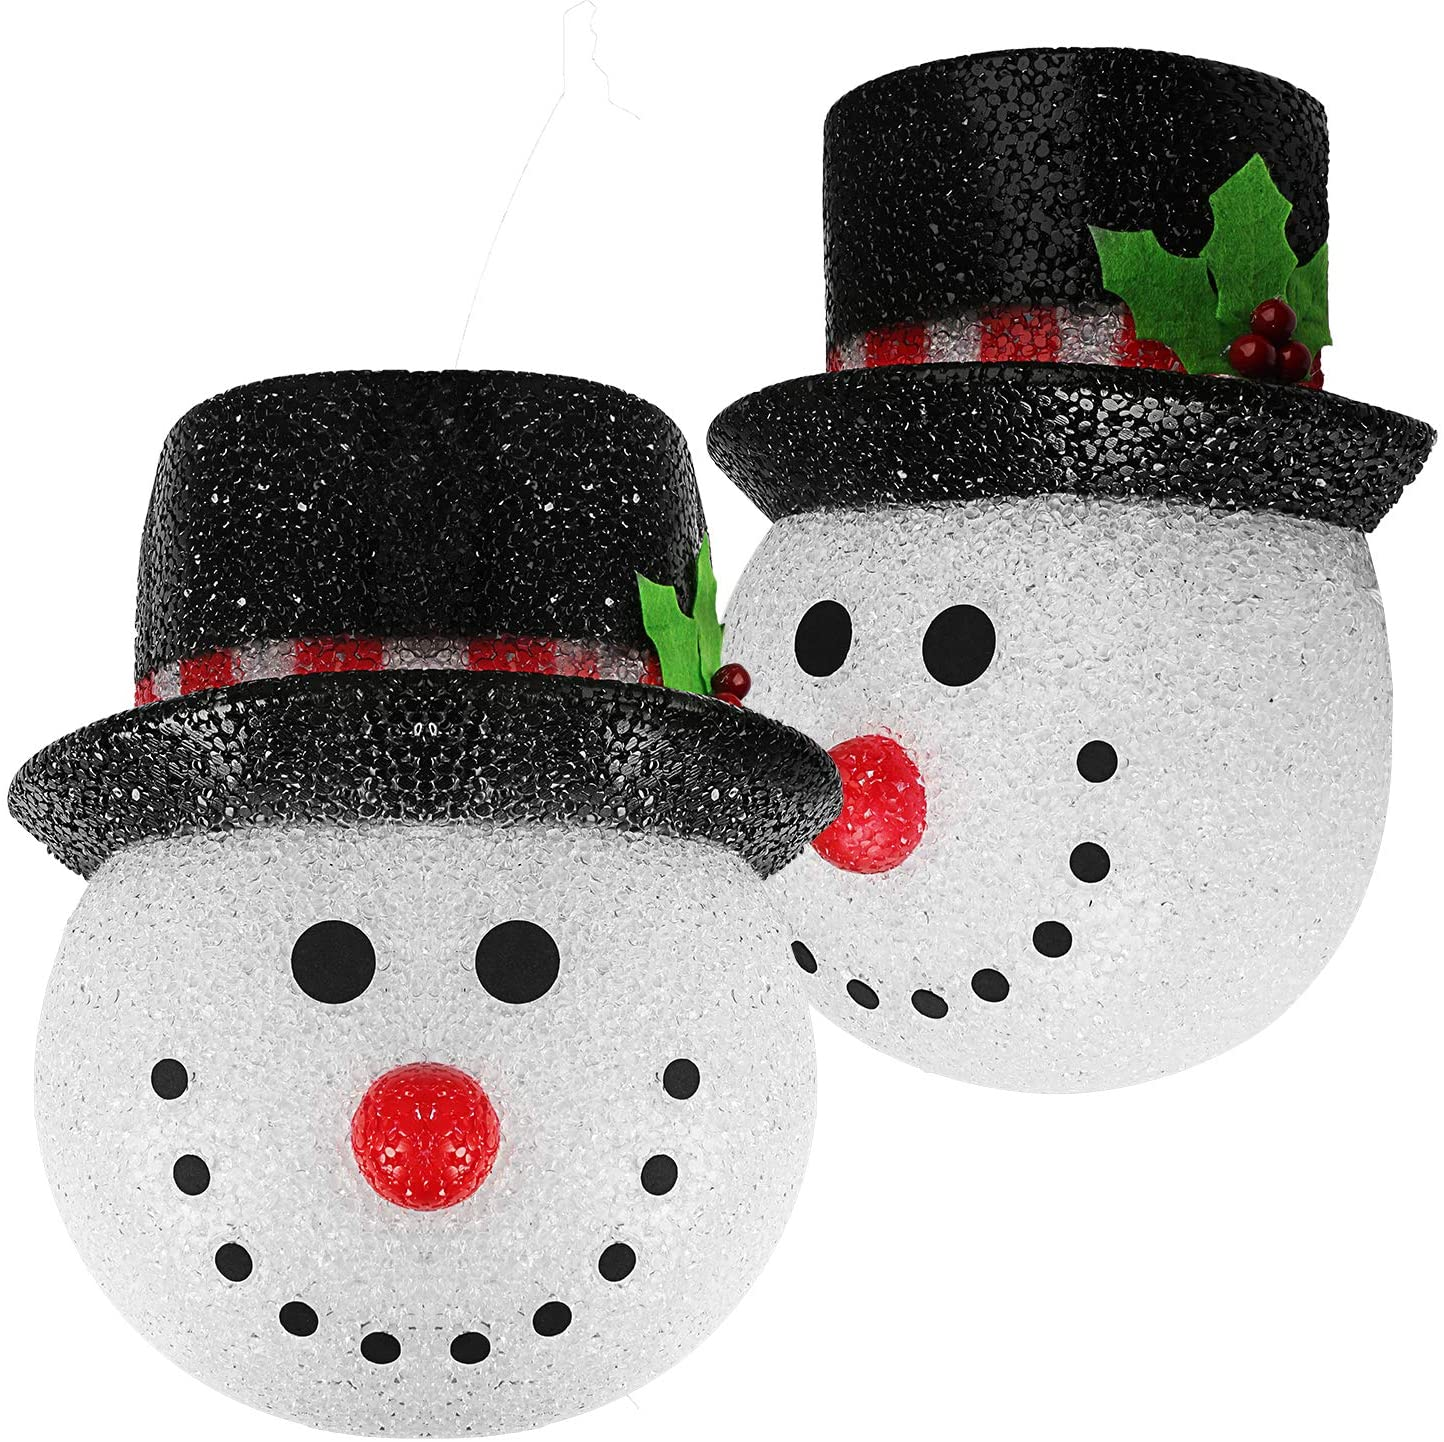 2 Pieces Christmas Porch Light Covers Christmas Outdoor Decoration Snowman Holiday Light Covers for Outdoor Indoor Winter Christmas Decoration